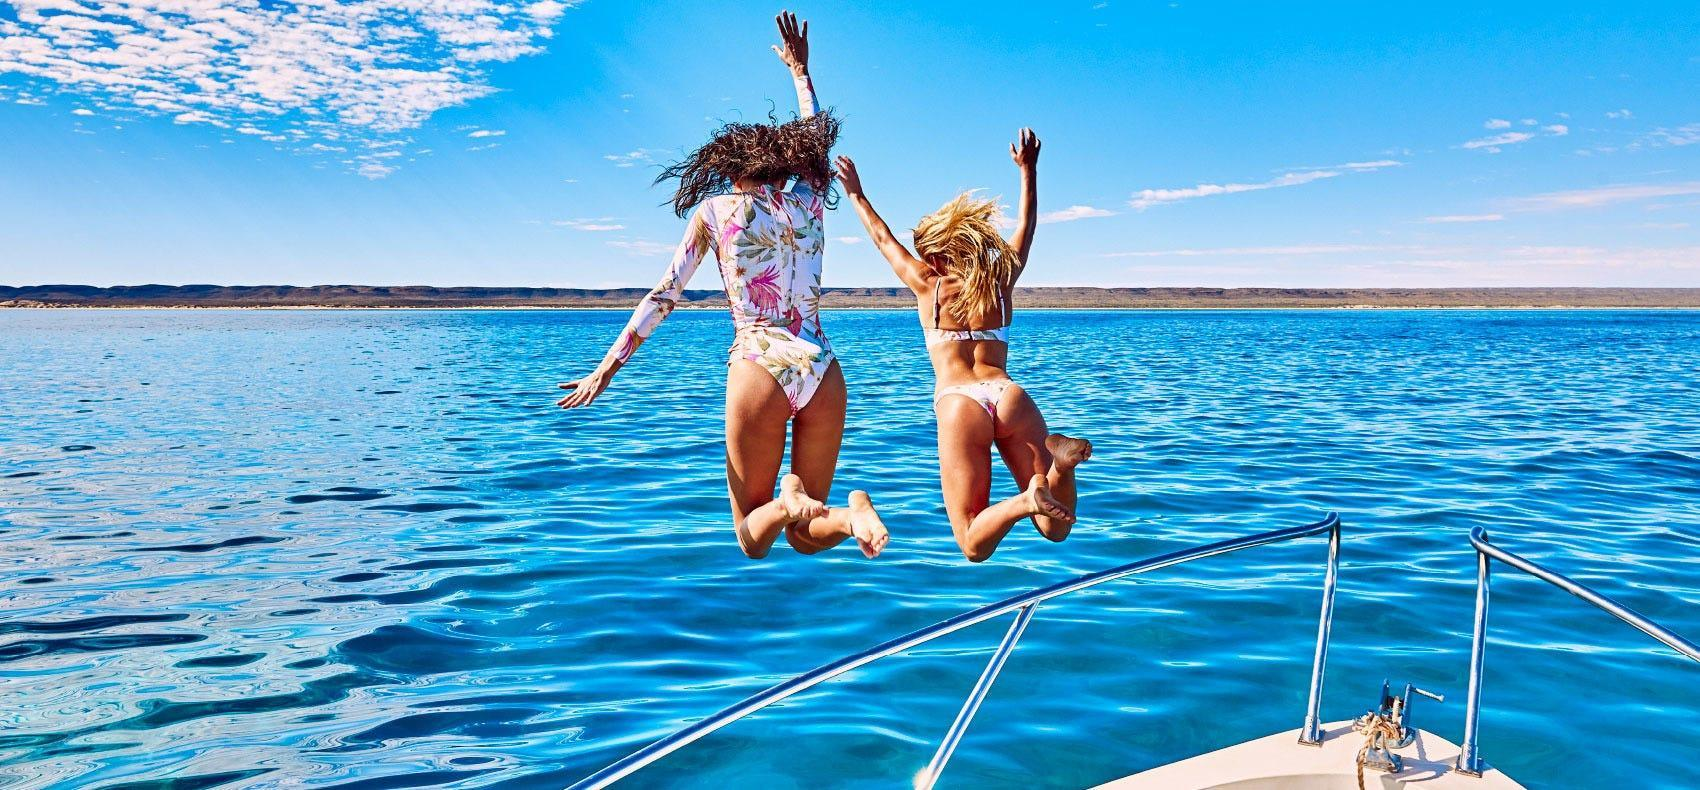 Jumping of a boat into the warm waters of Fiji